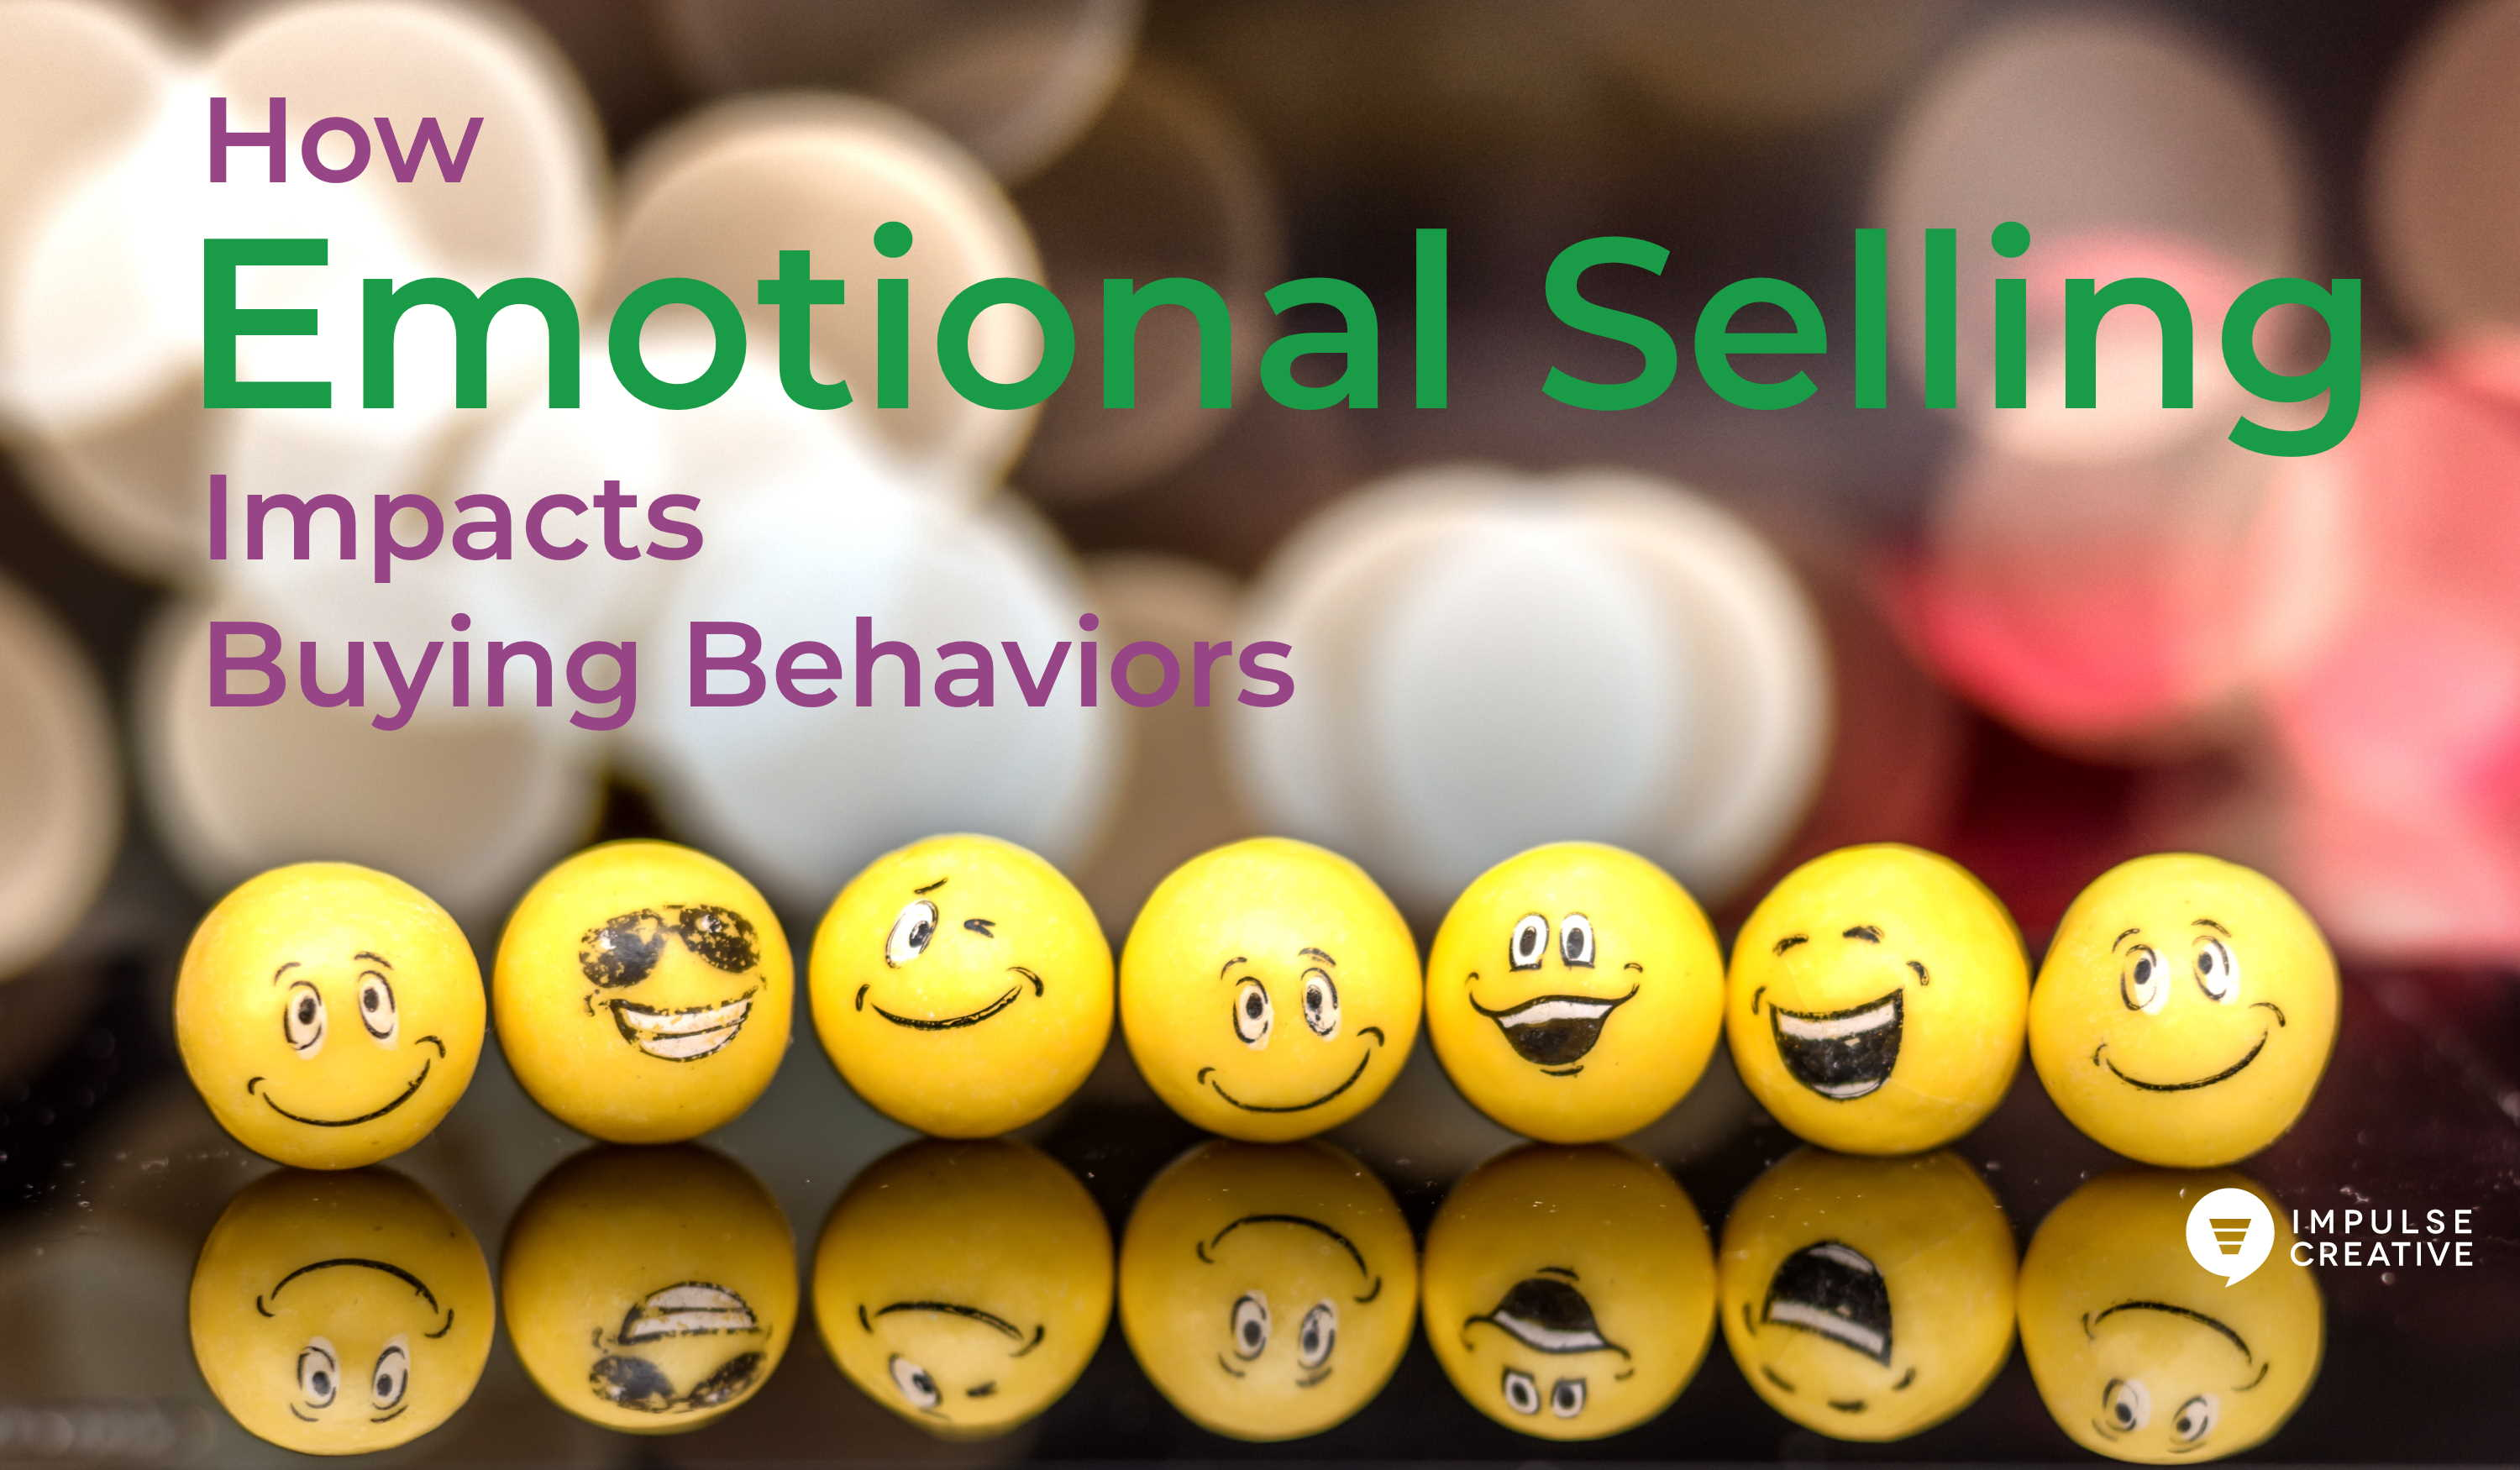 How Emotional Selling Impacts Buying Behaviors